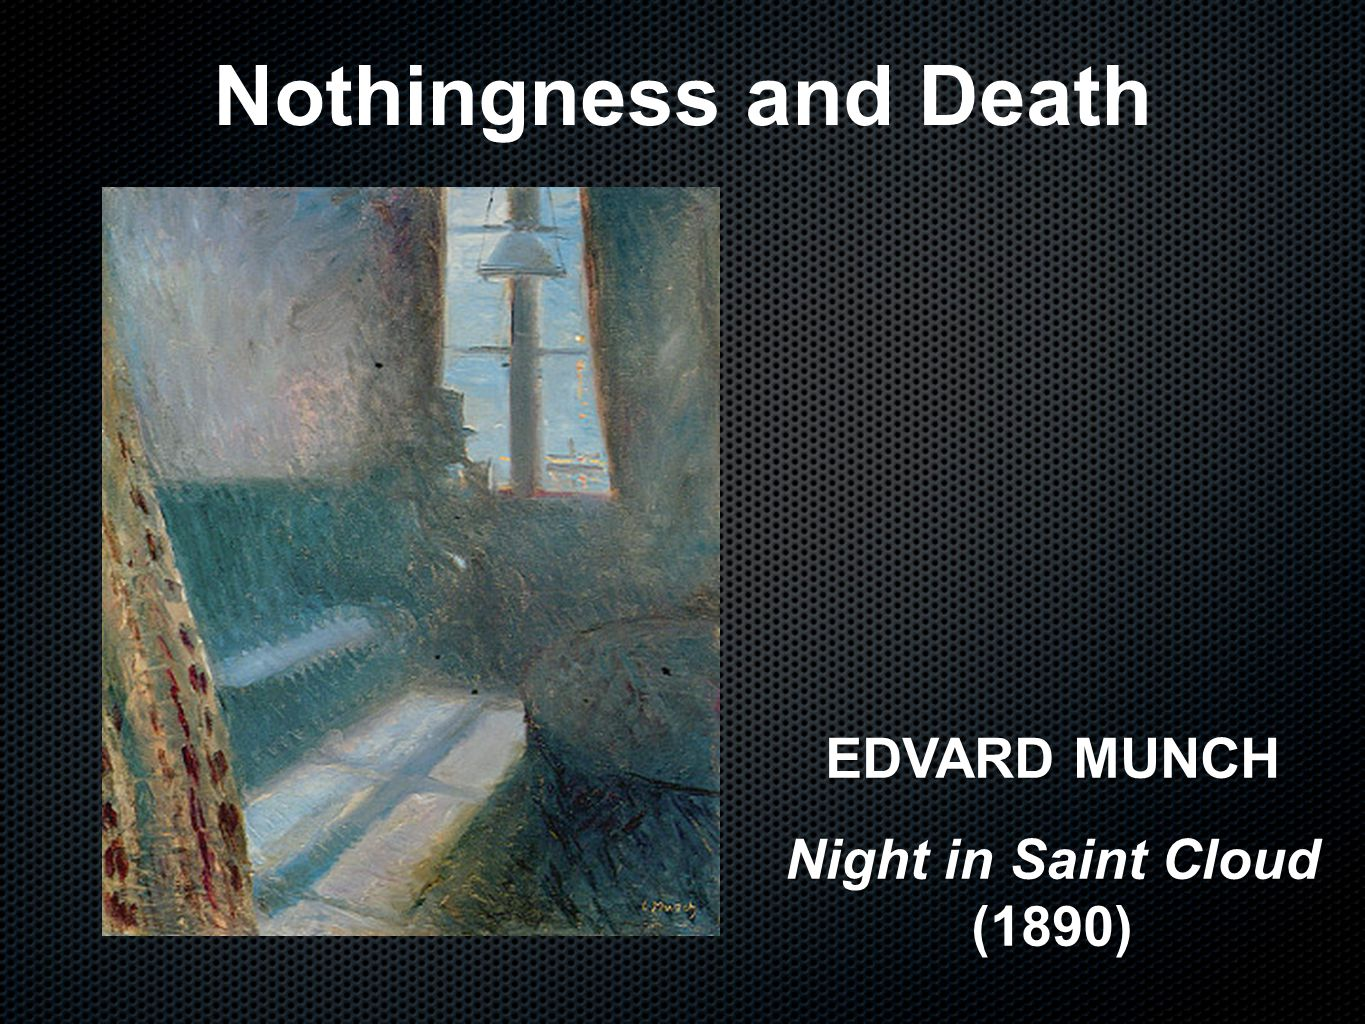 Nothingness and Death EDVARD MUNCH Night in Saint Cloud (1890)